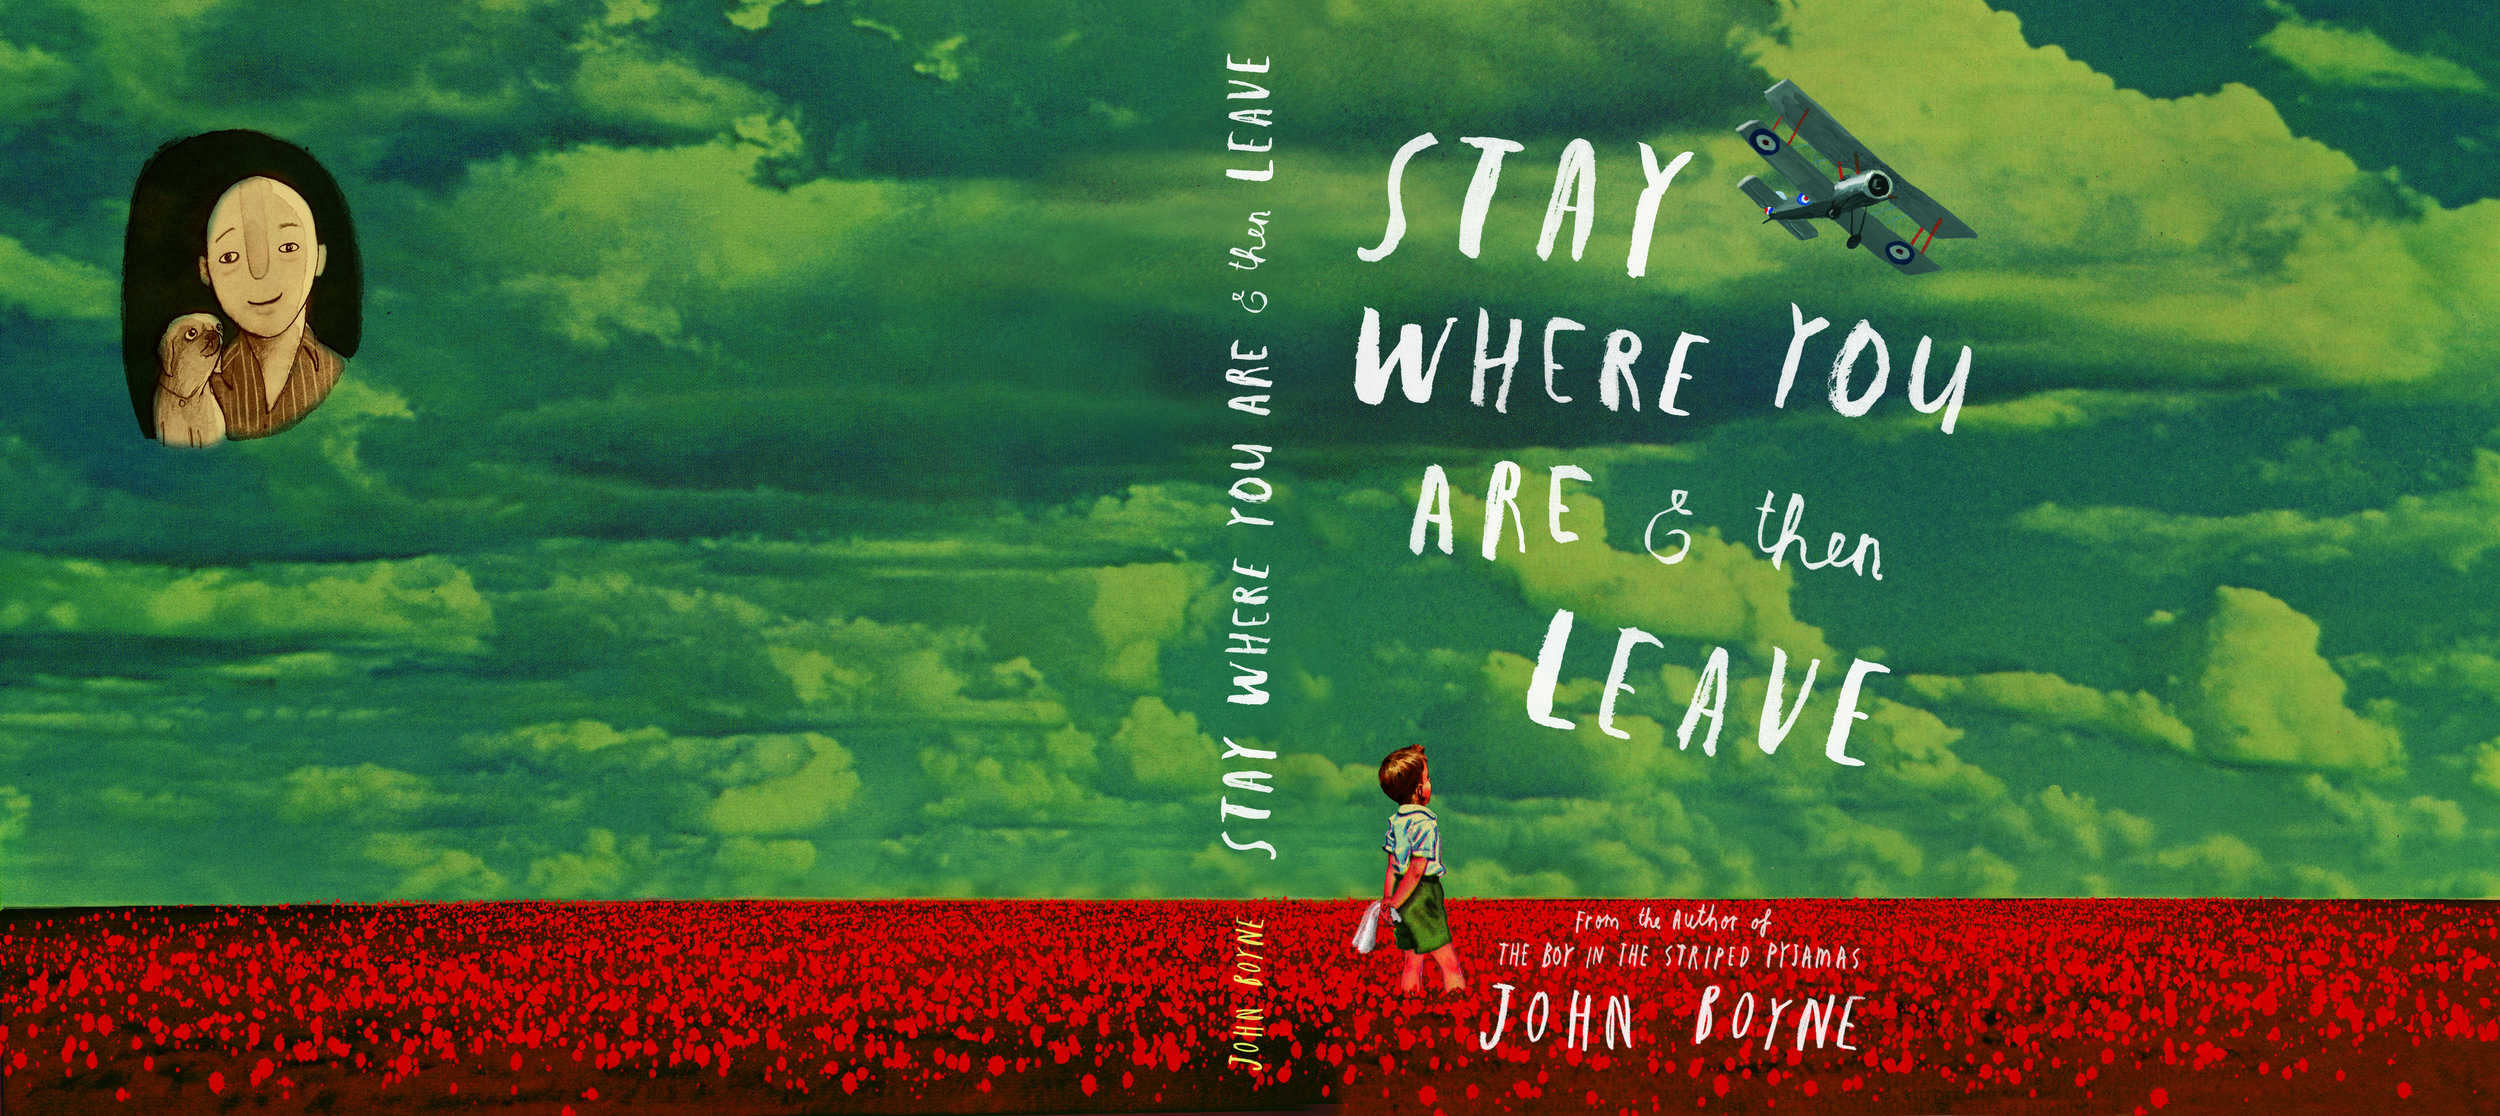 Cover Design for  Stay Where You Are & Then Leave  by John Boyne